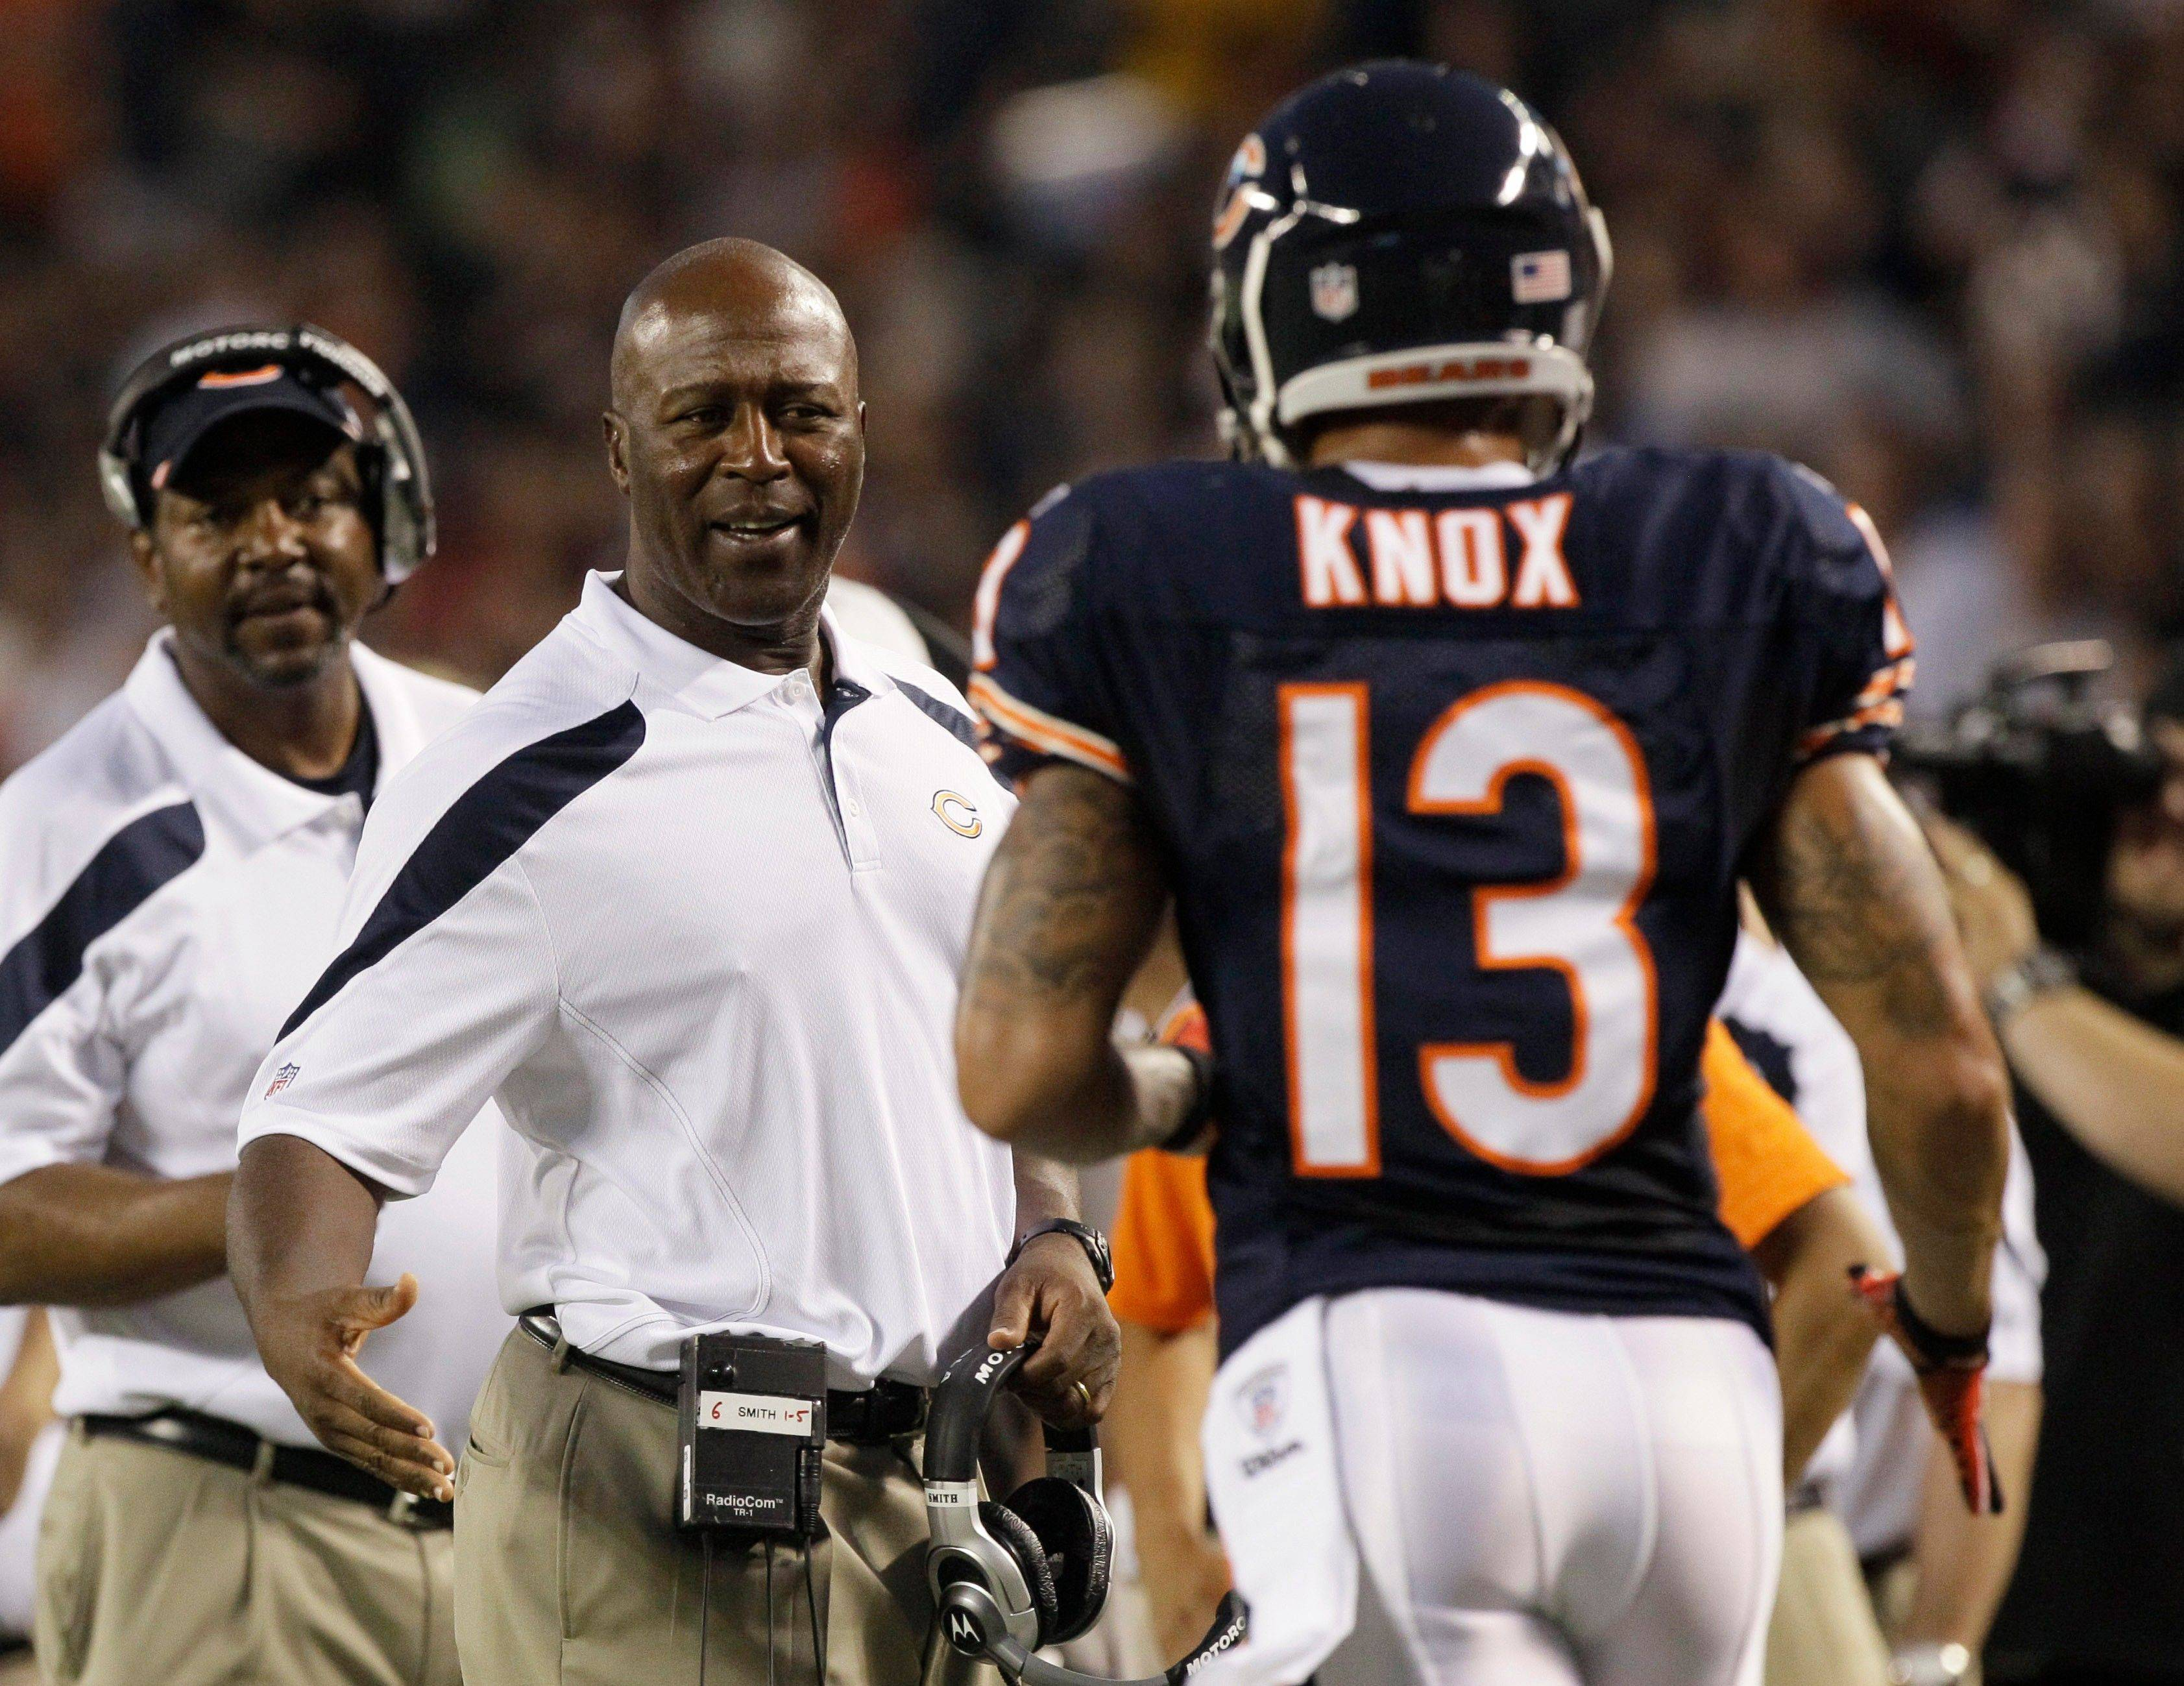 Chicago Bears wide receiver Johnny Knox is greeted on the sidelines by head coach Lovie Smith after his touchdown reception against the Cleveland Browns in the first half.